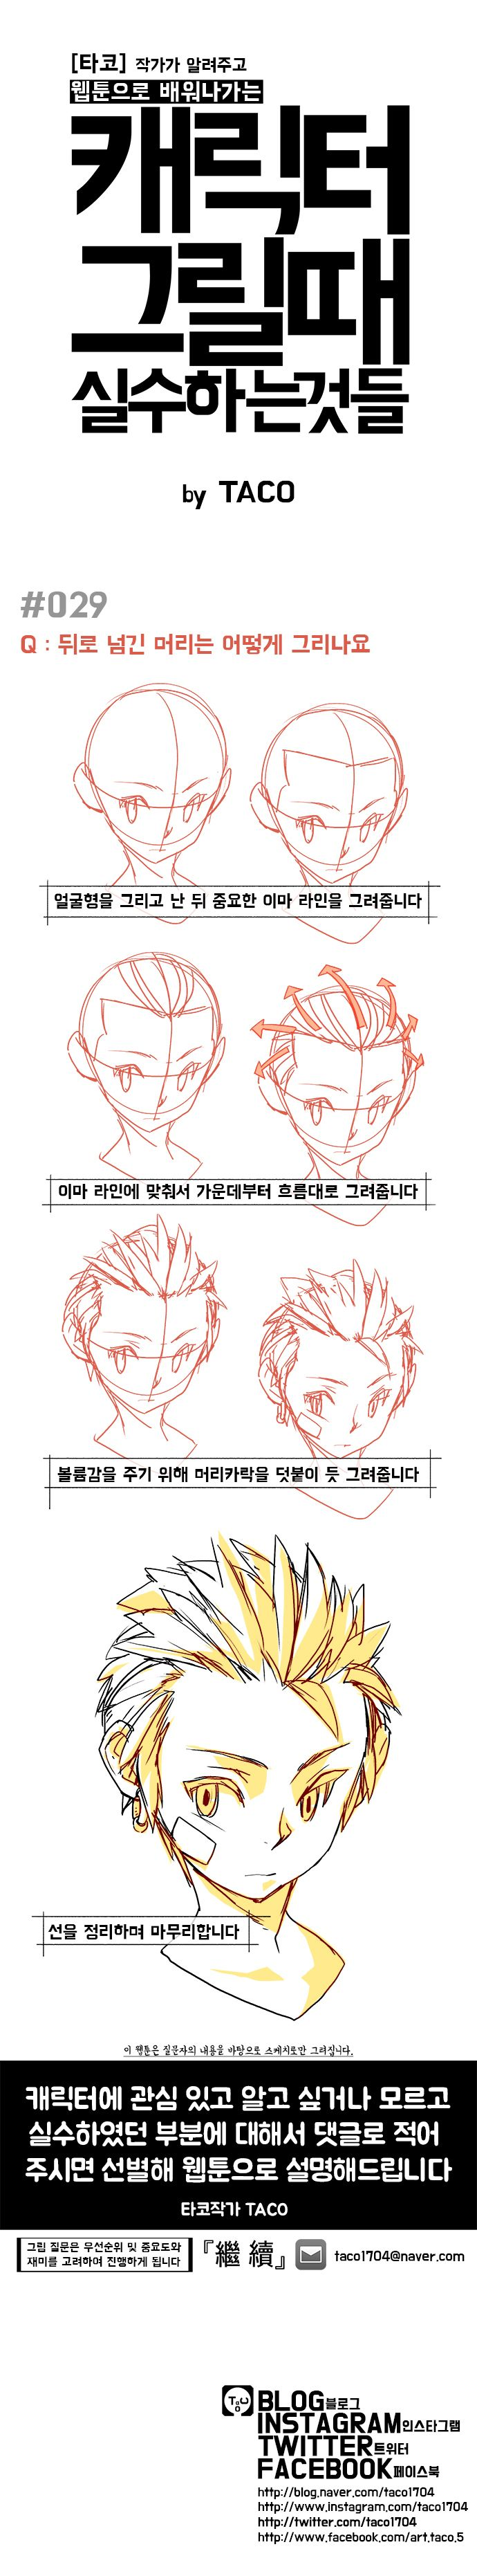 Drawing tutorial in what I think is Chinese.  If I'm wrong, please correct me.